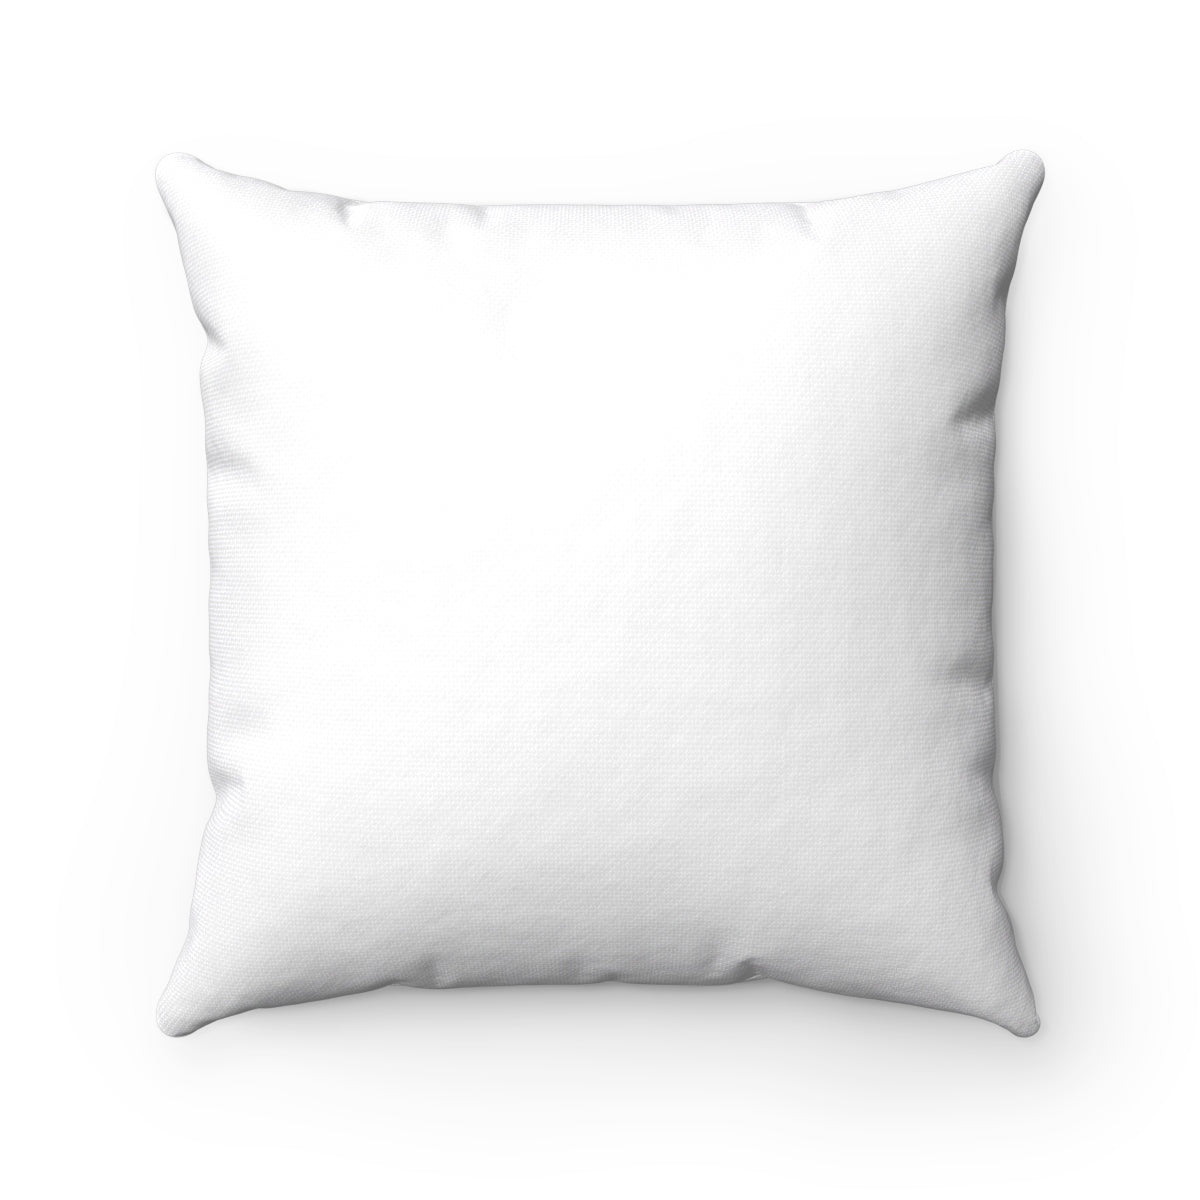 Just Love Spun Polyester Square Pillow